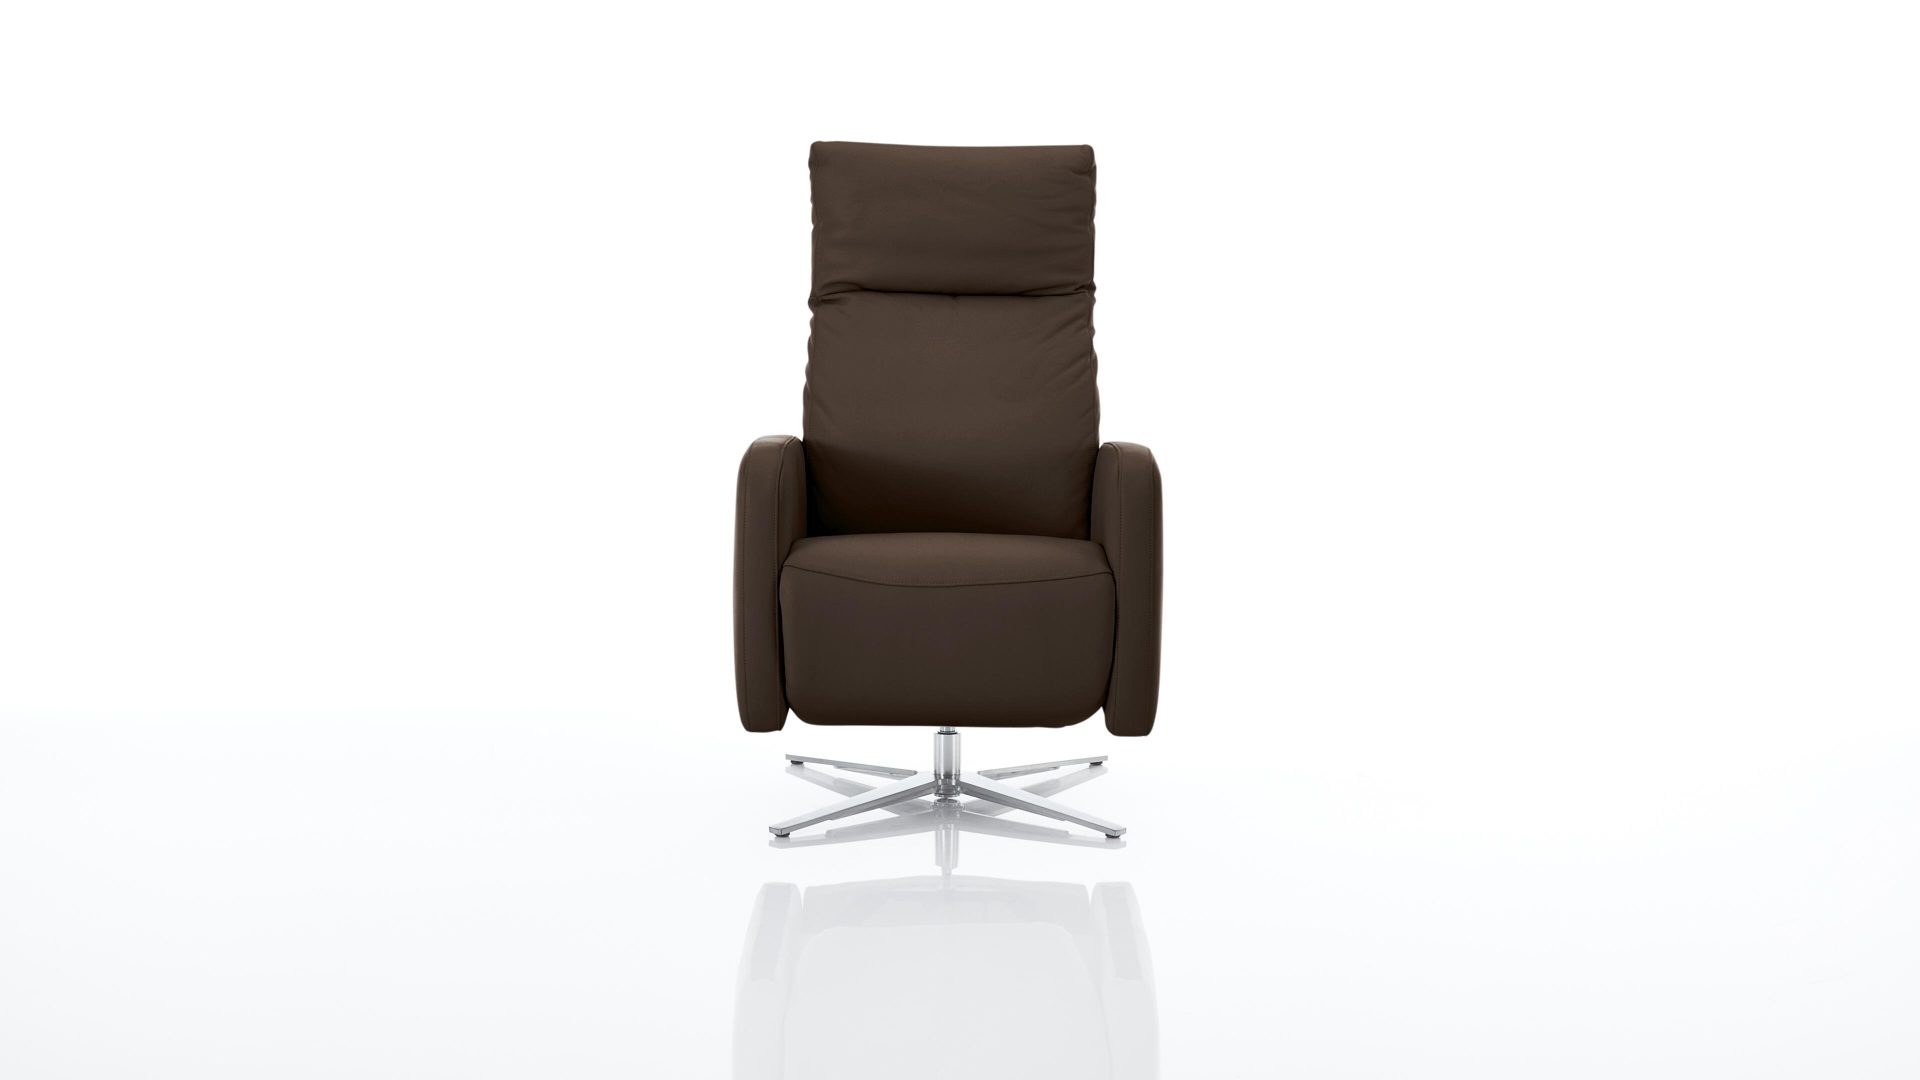 Sessel Interliving aus Leder in Braun Interliving Sessel Serie 4501 – Polstermöbel macchiatofarbenes LongLife-Leder Z77-54 & satinierter Nickel-Sternfuß